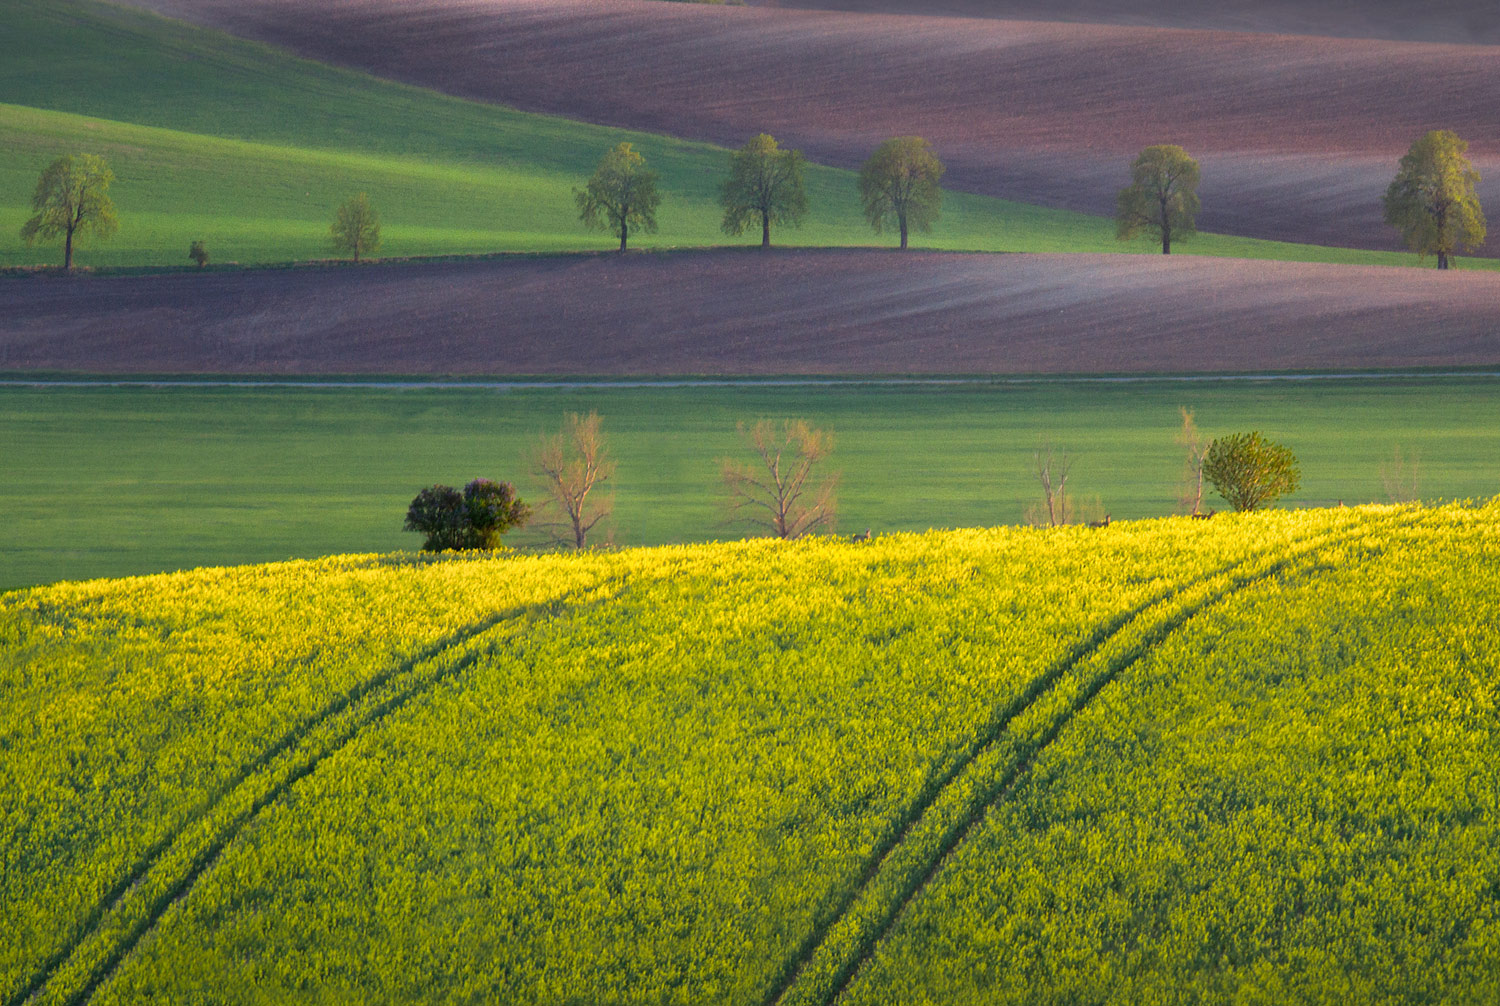 Beautiful Photos Of Moravia Czech Republic Countryside